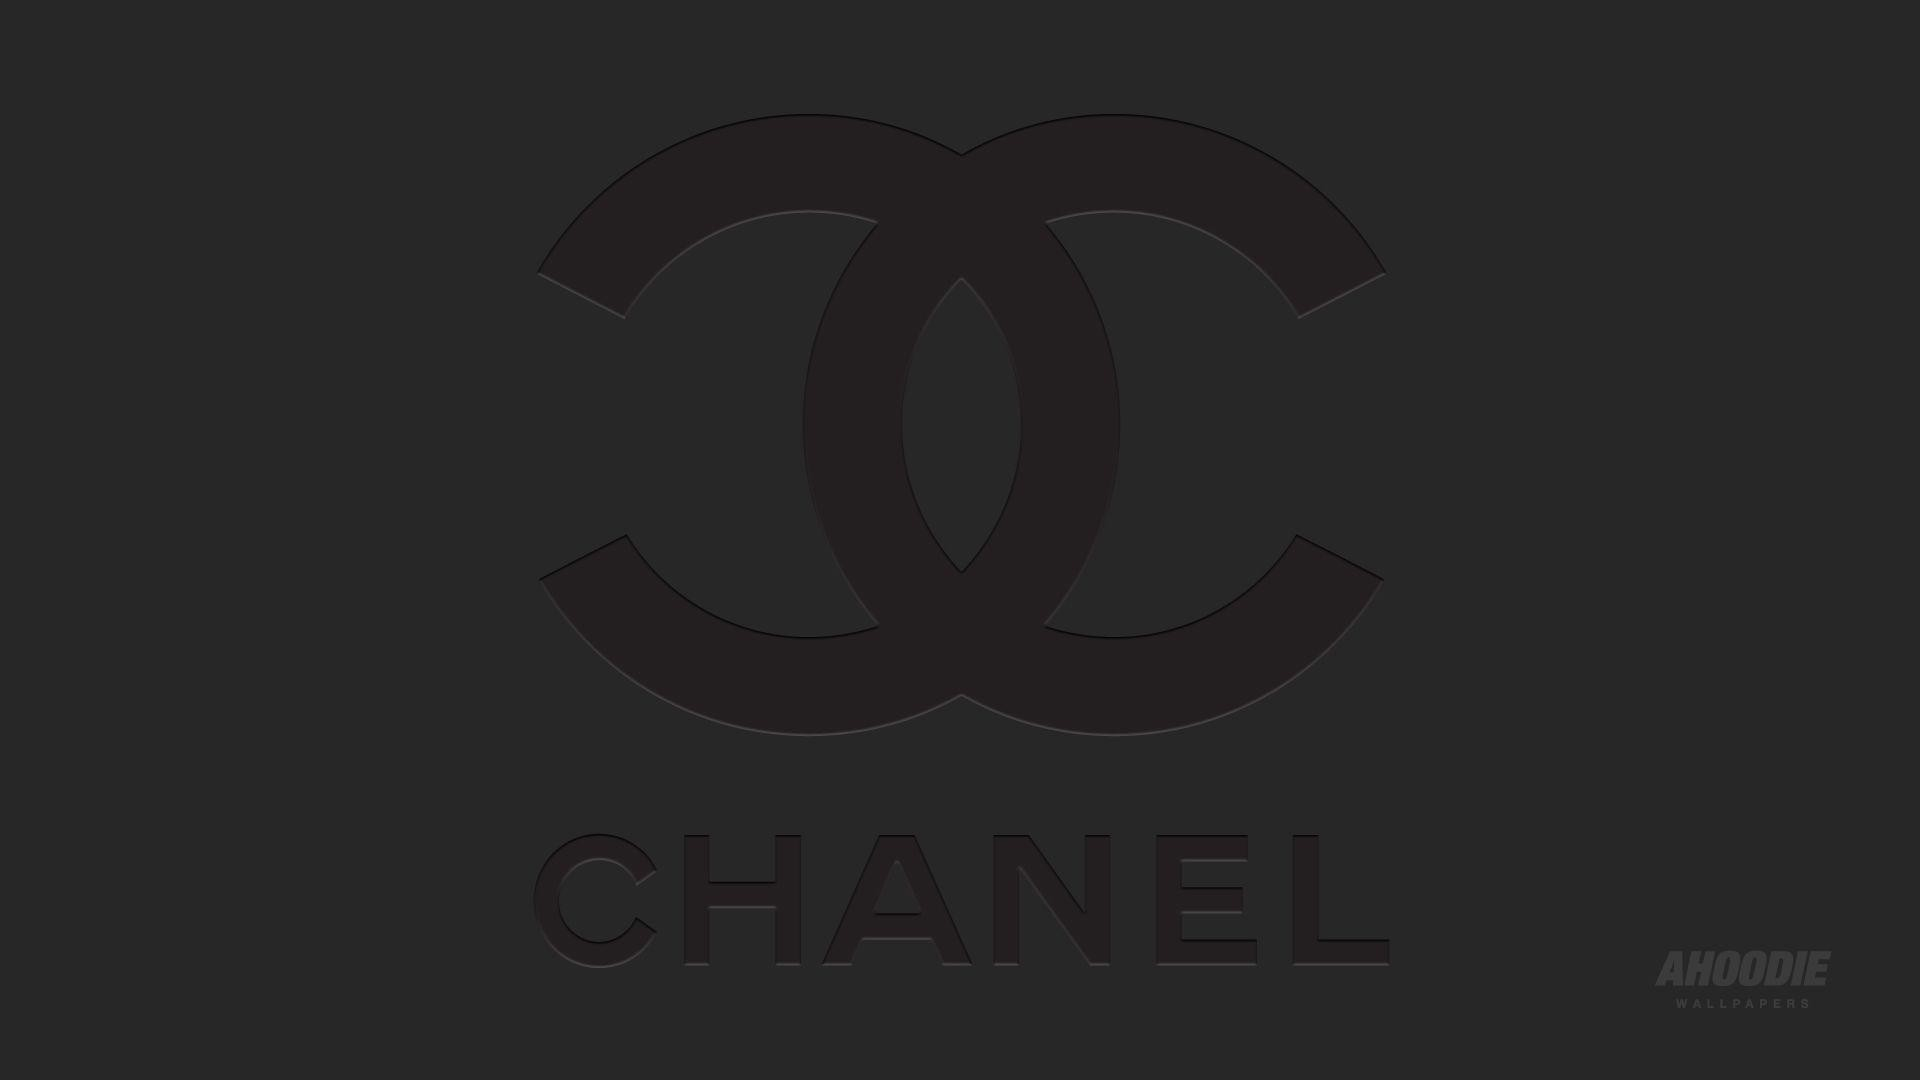 1920x1080 Wallpapers For > Chanel Logo Wallpaper Black